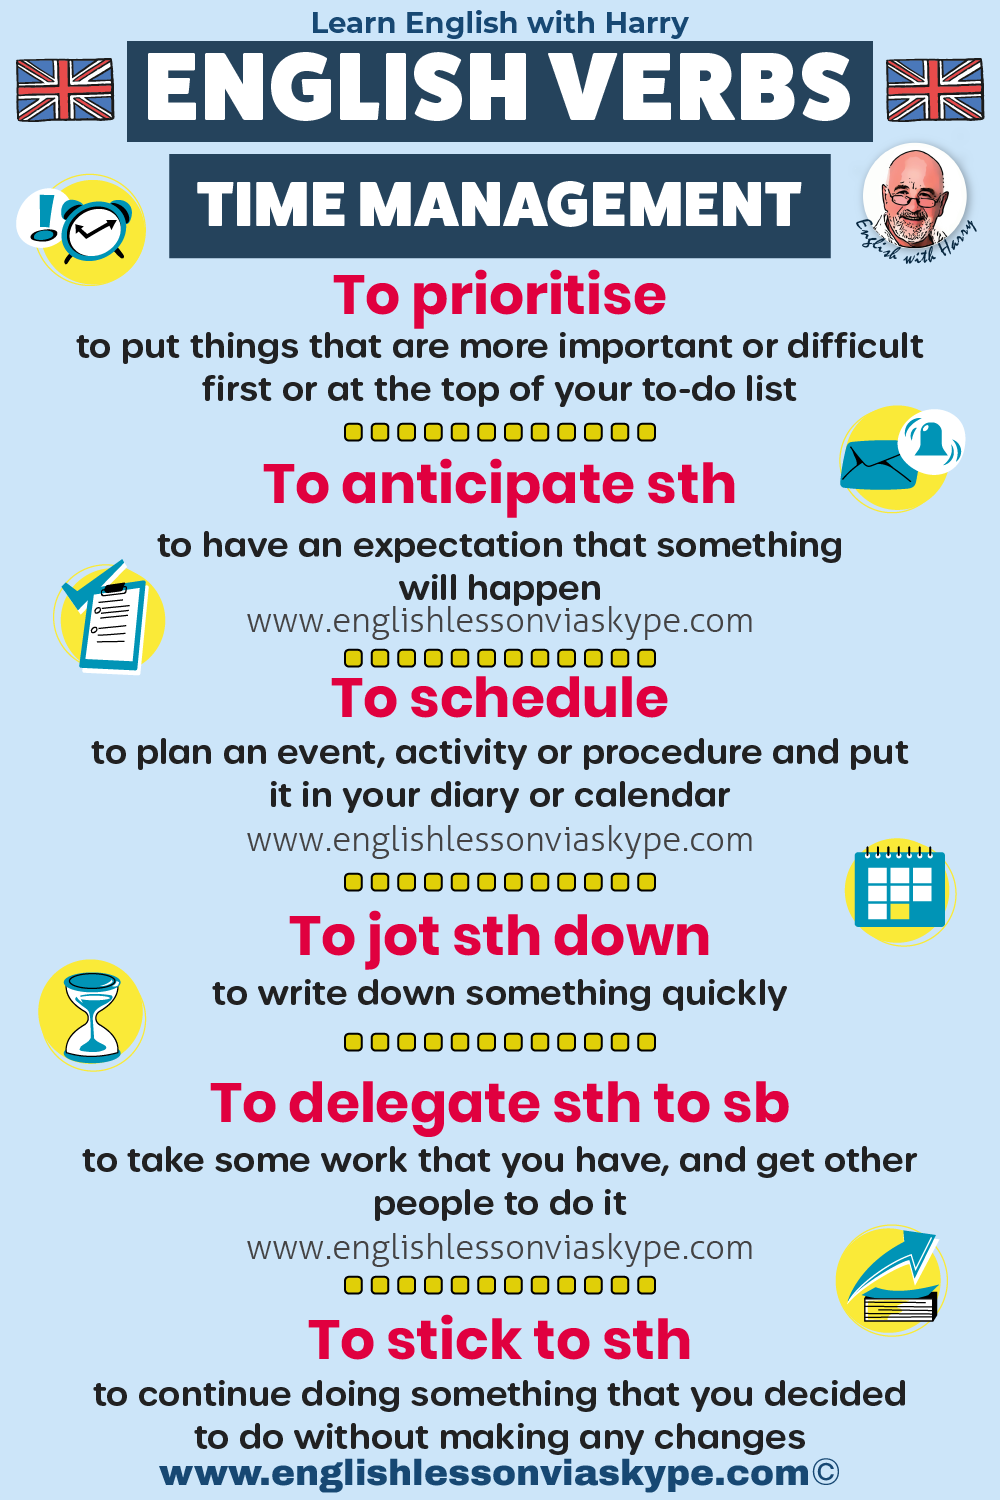 English verbs related to time management. Study English advanced level. English lessons on Zoom and Skype www.englishlessonviaskype.com #learnenglish #englishlessons #EnglishTeacher #vocabulary #ingles #อังกฤษ #английский #aprenderingles #english